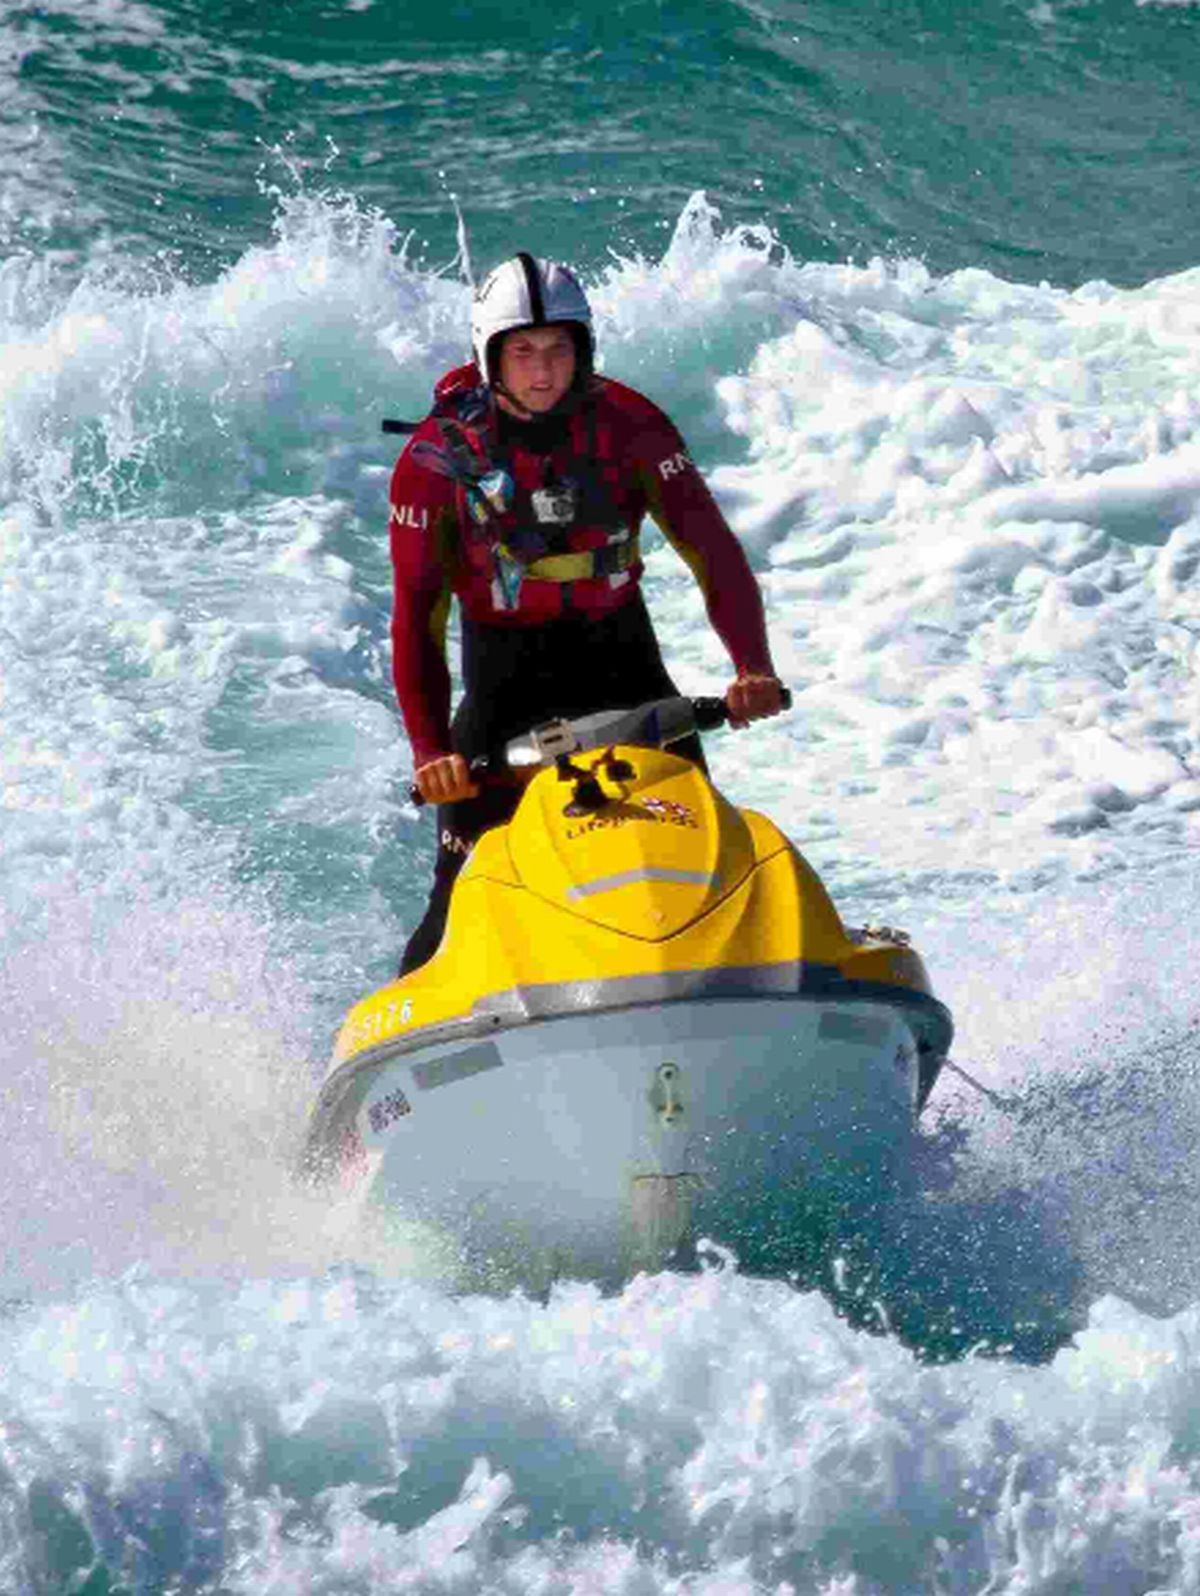 ON PATROL: The RNLI is providing lifeguard cover at beaches